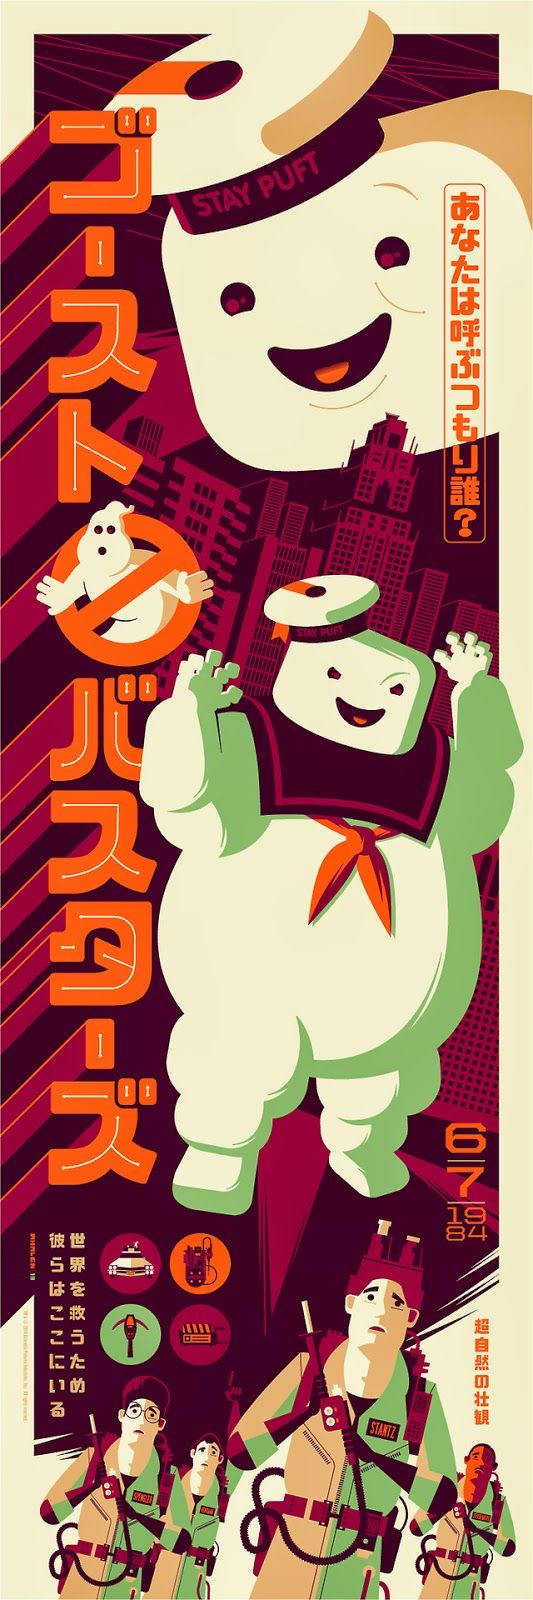 Tom Whalen Confectionary Kaiju Ghostbusters Poster Release Details